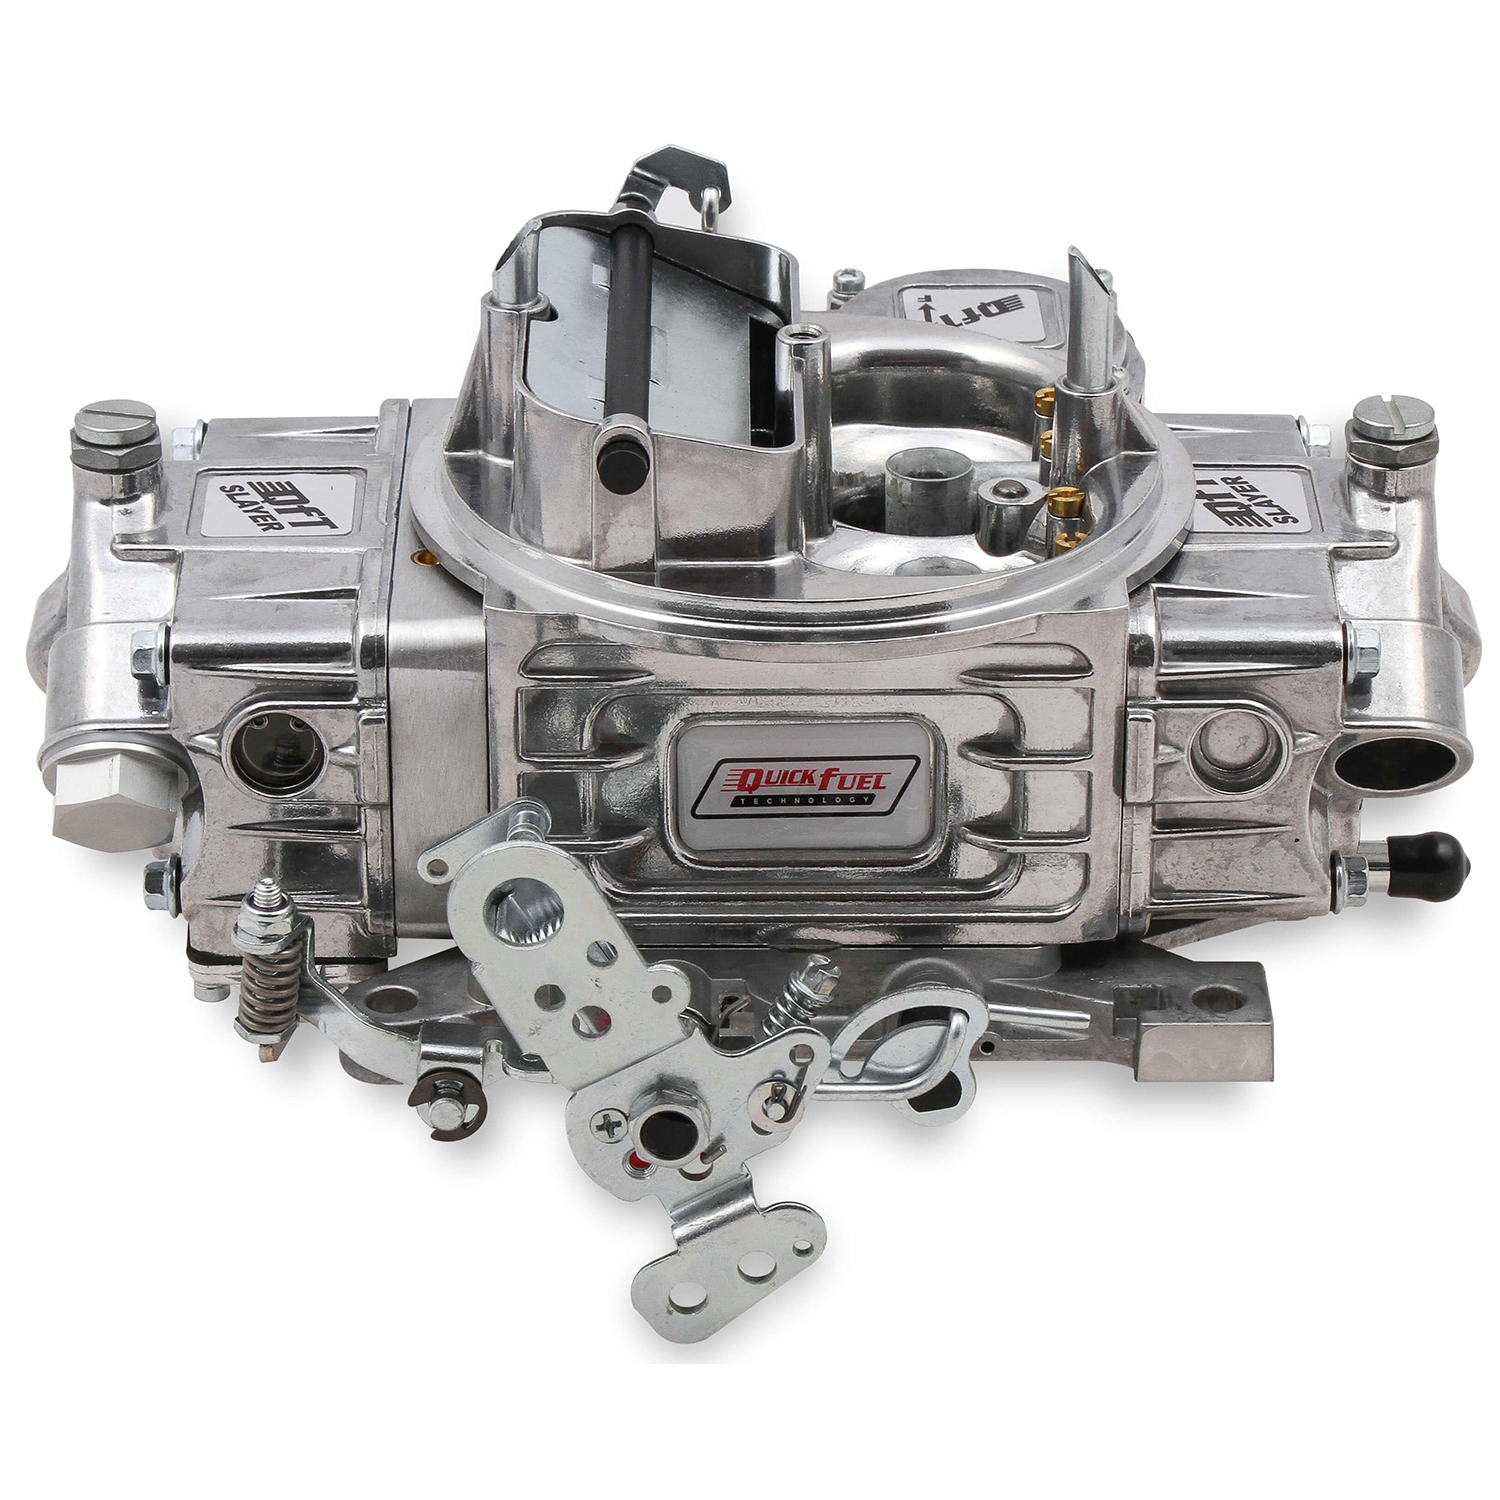 Quick Fuel, Slayer Series Vacuum Secondary Carb, 750 CFM